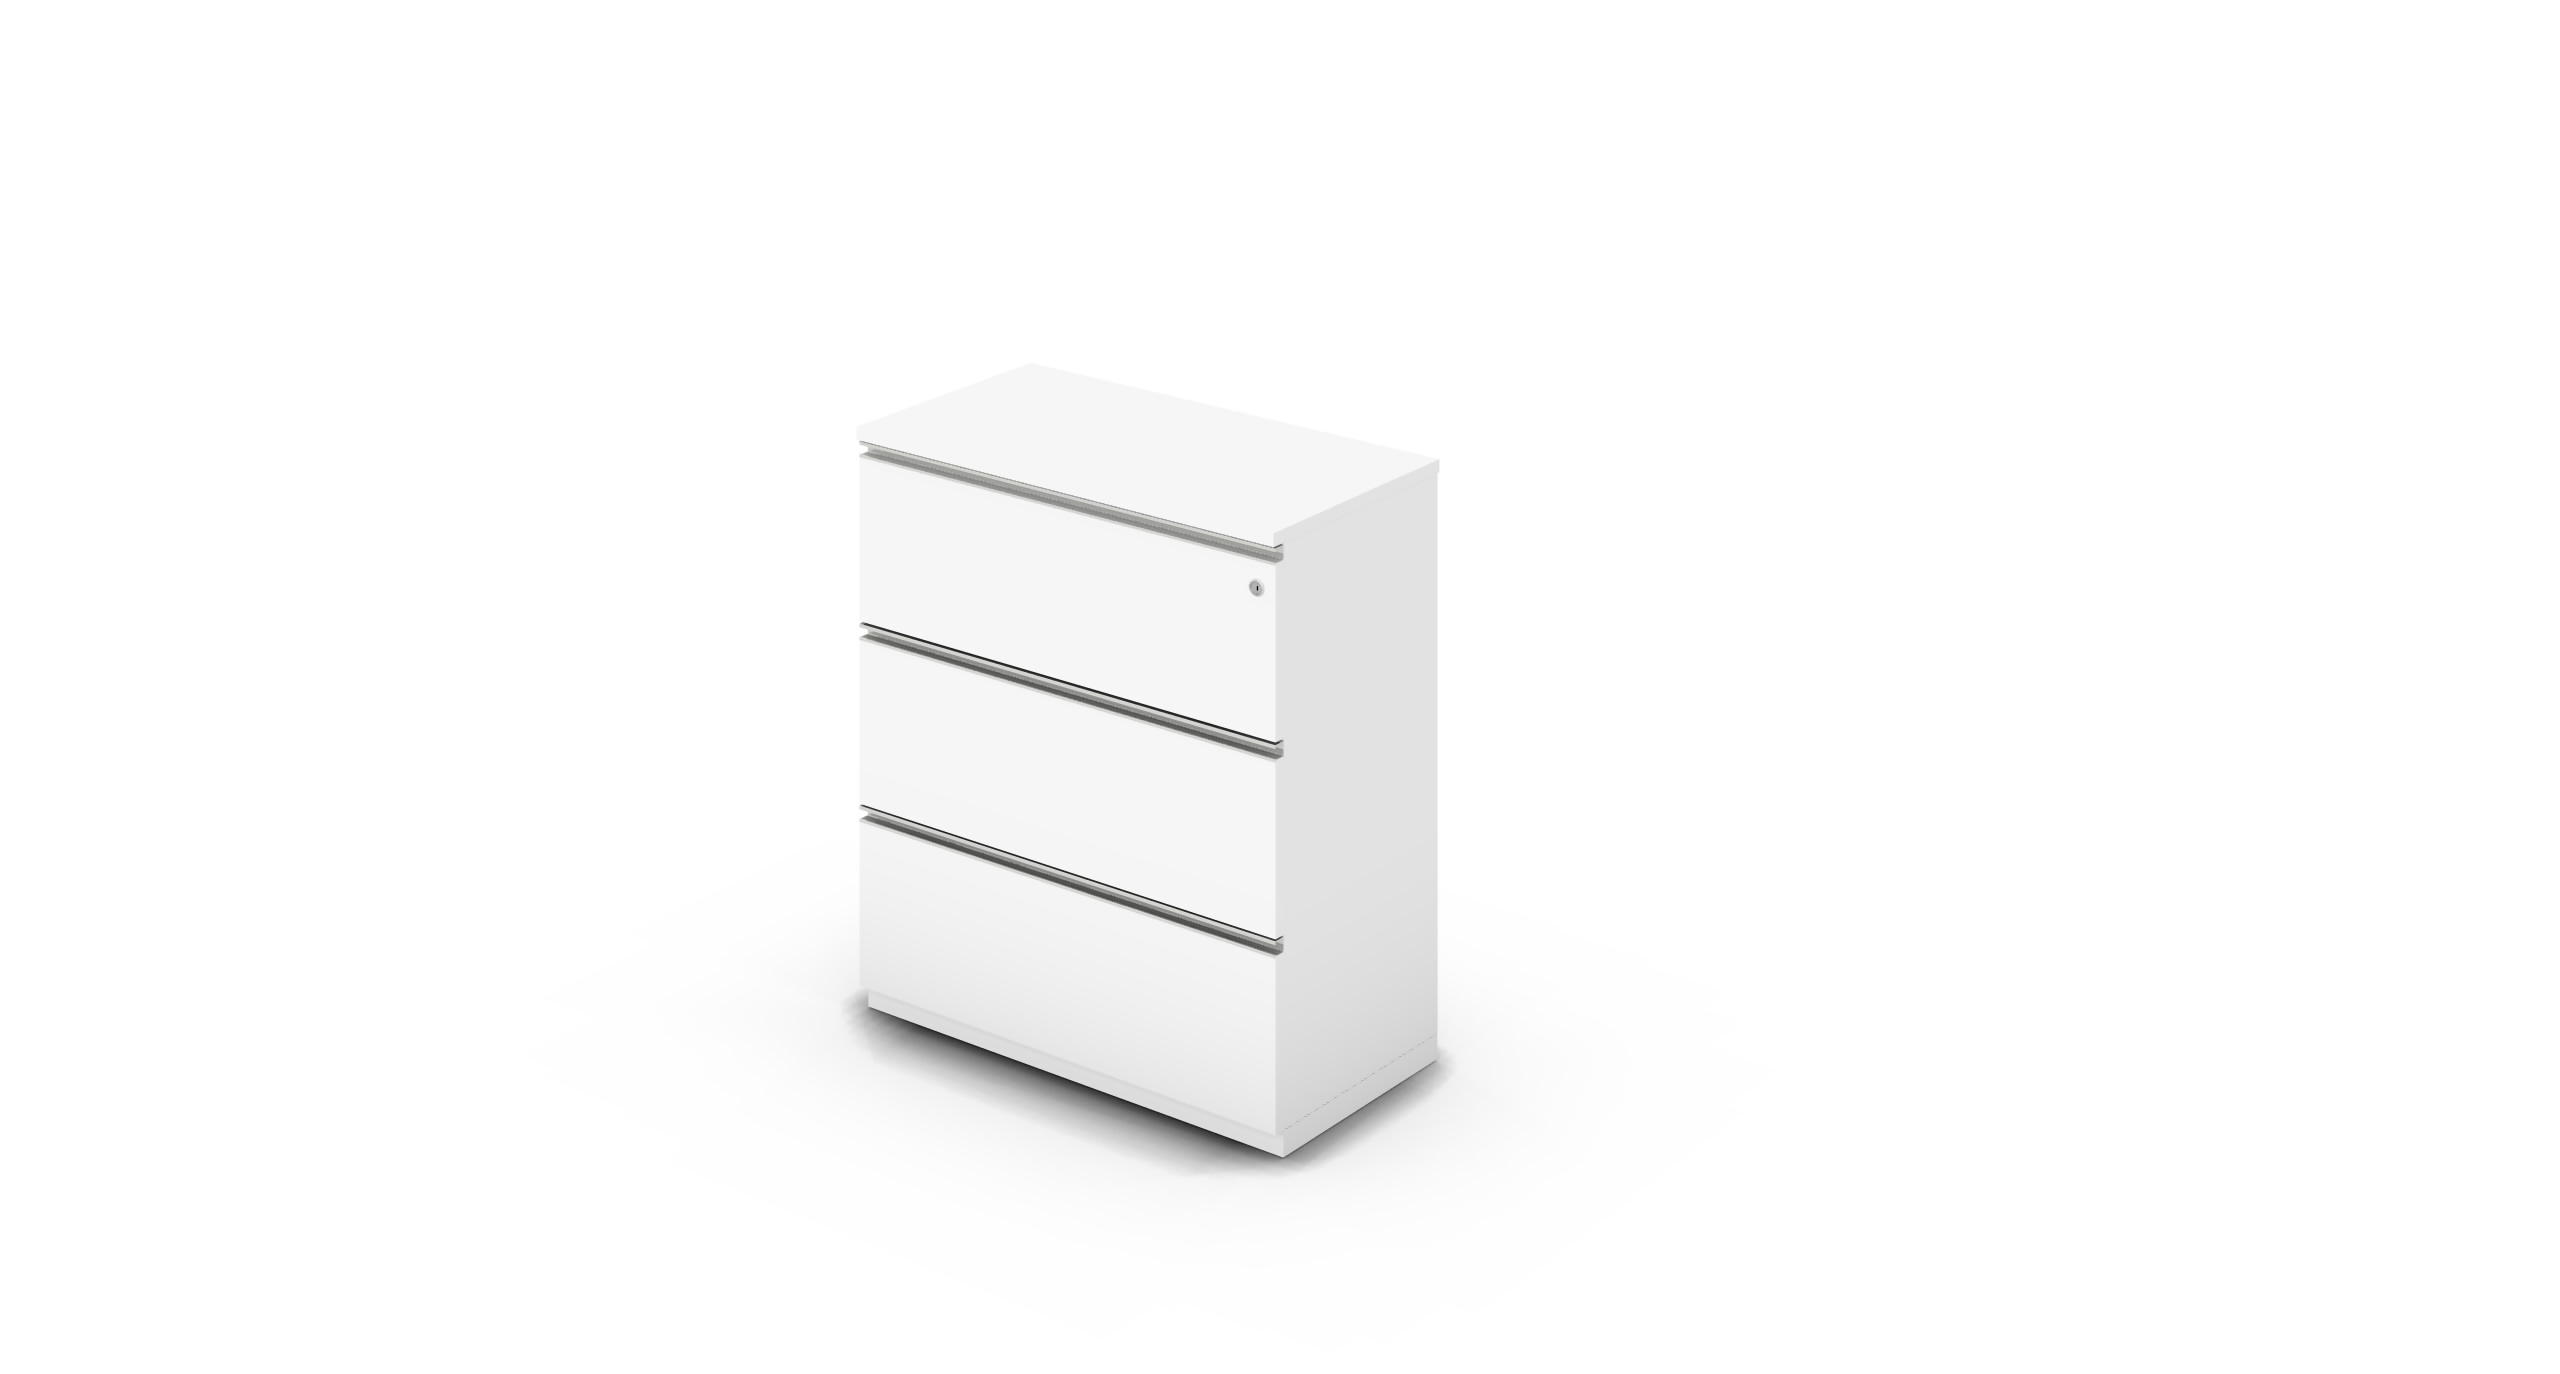 Cabinet_900x450x1125_DR_White_Rail_WithCylinder